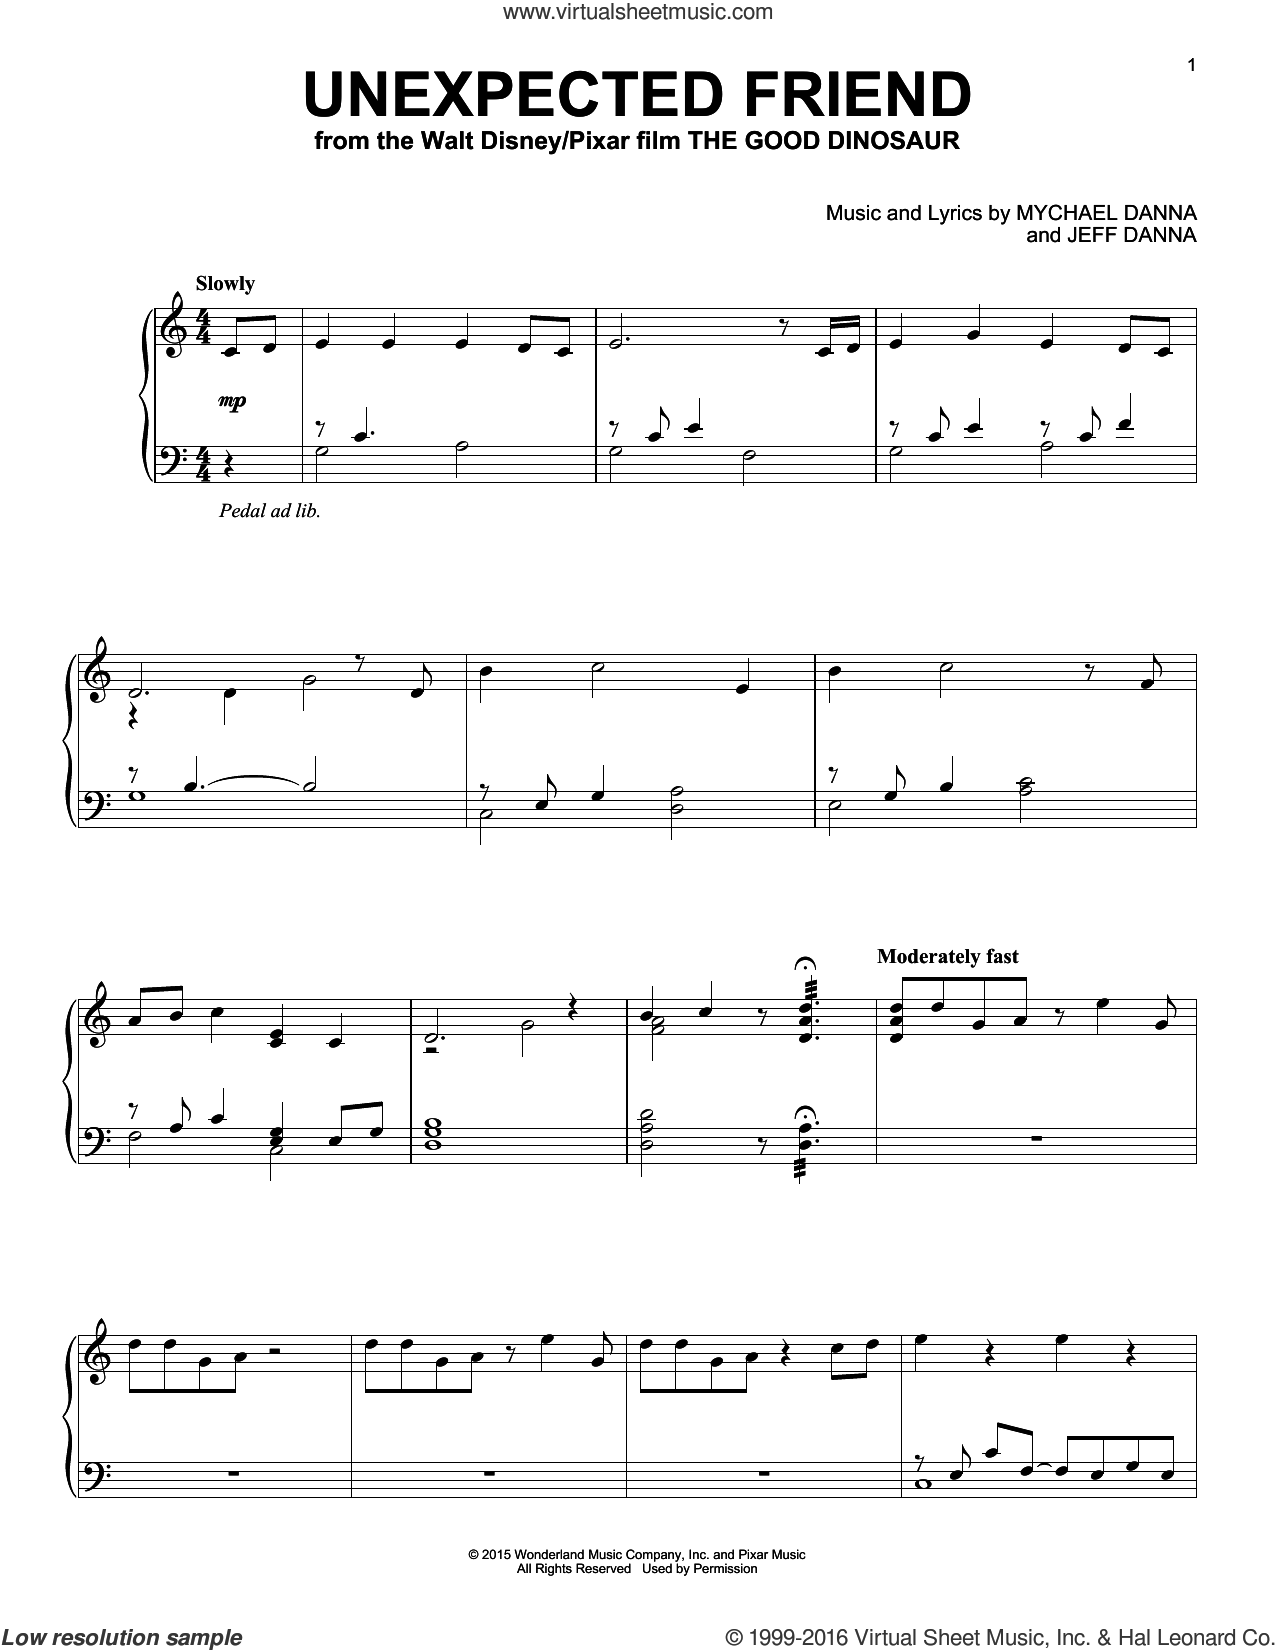 Unexpected Friend sheet music for piano solo by Mychael & Jeff Danna, Jeff Danna and Mychael Danna, intermediate skill level